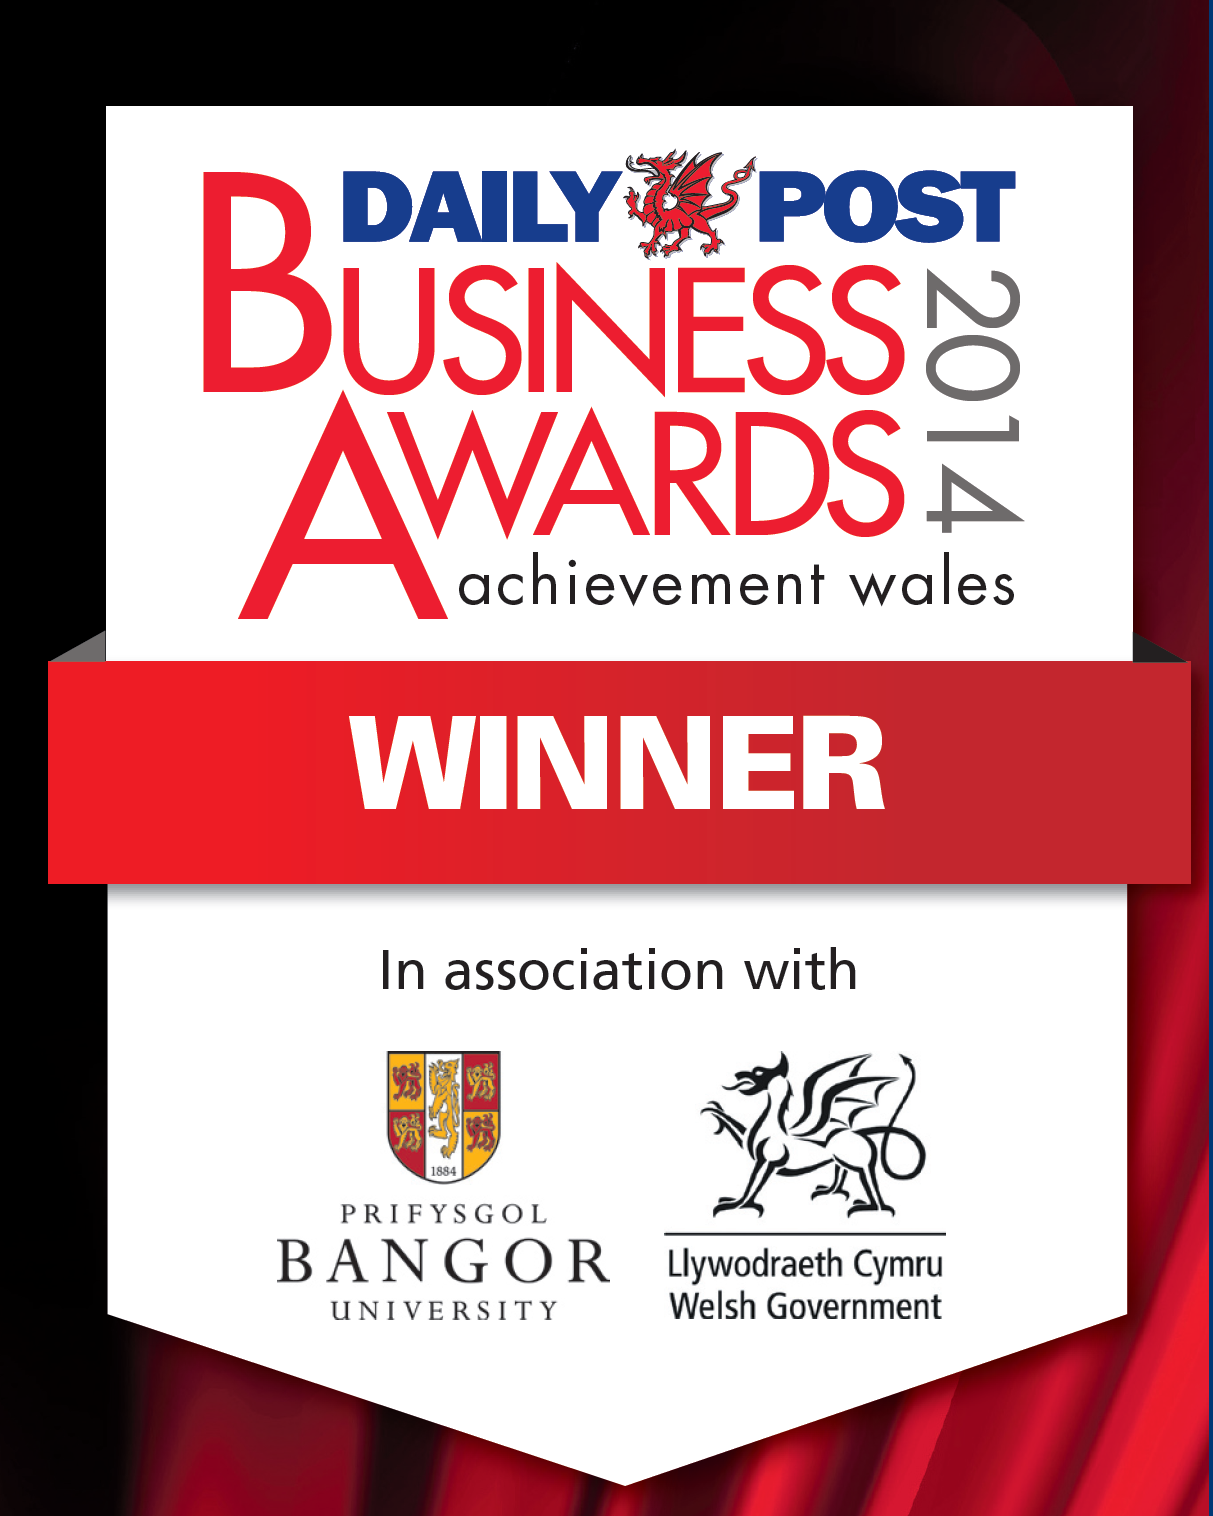 Siop Pwllglas Daily Post Business Awards 2014 Winner